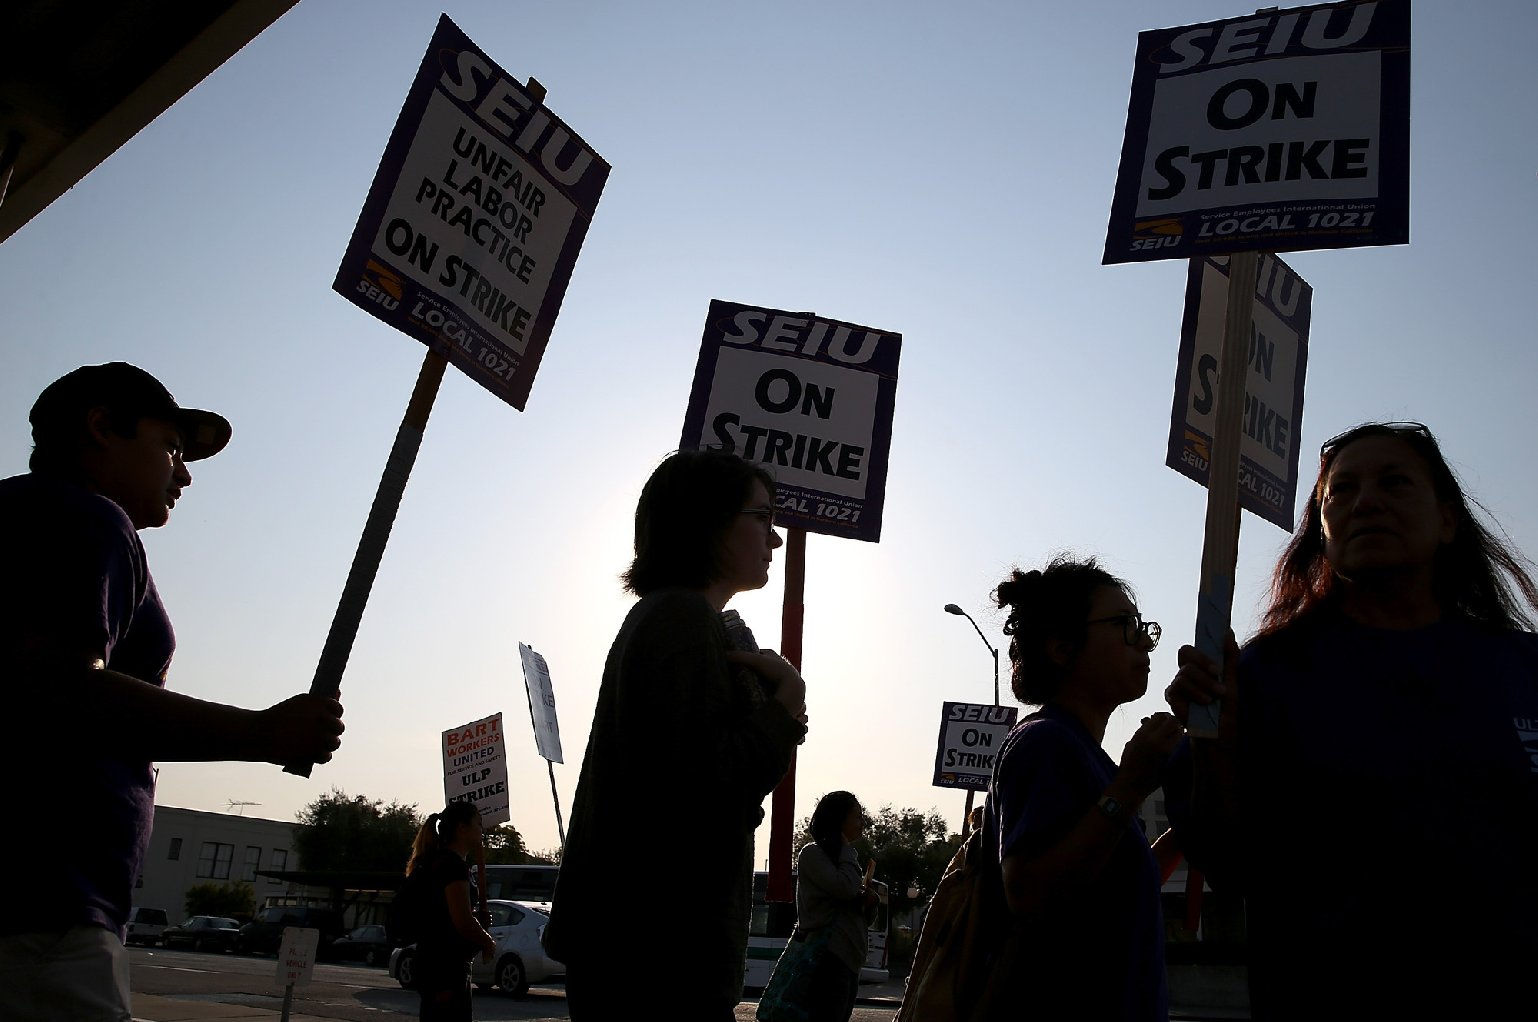 BART workers picket in Oakland during July strike. (Justin Sullivan/Getty Images)